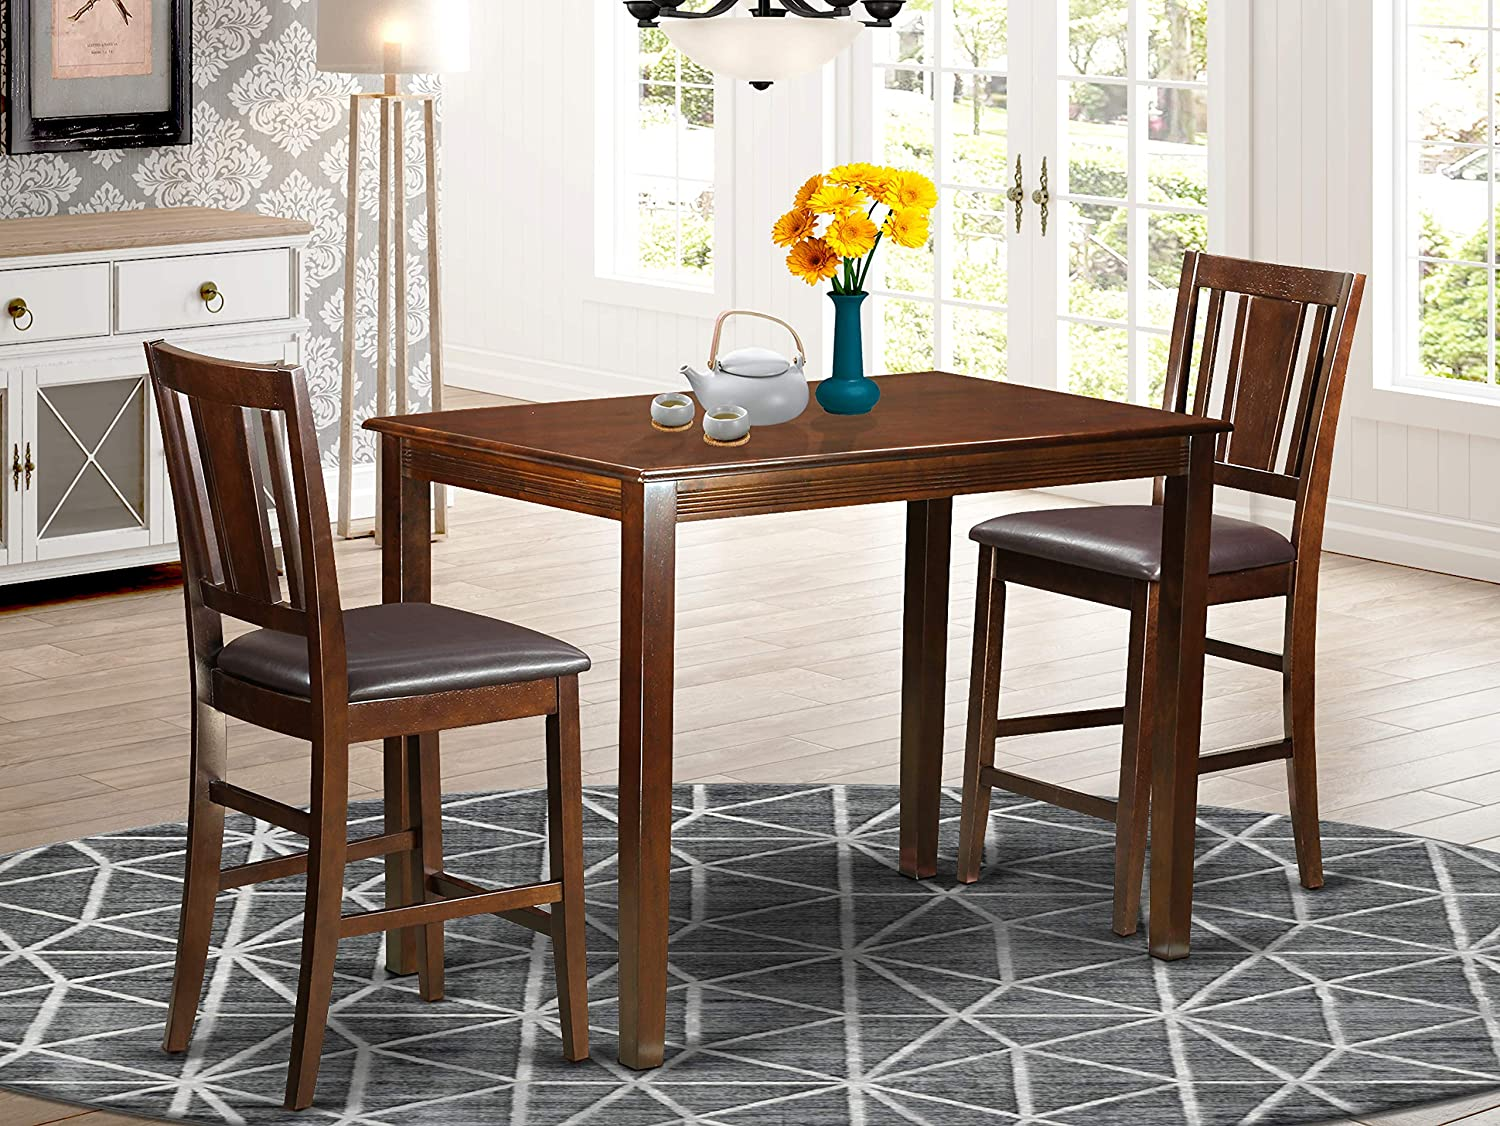 3 PC Dining counter height set - Table and 2 bar stools.